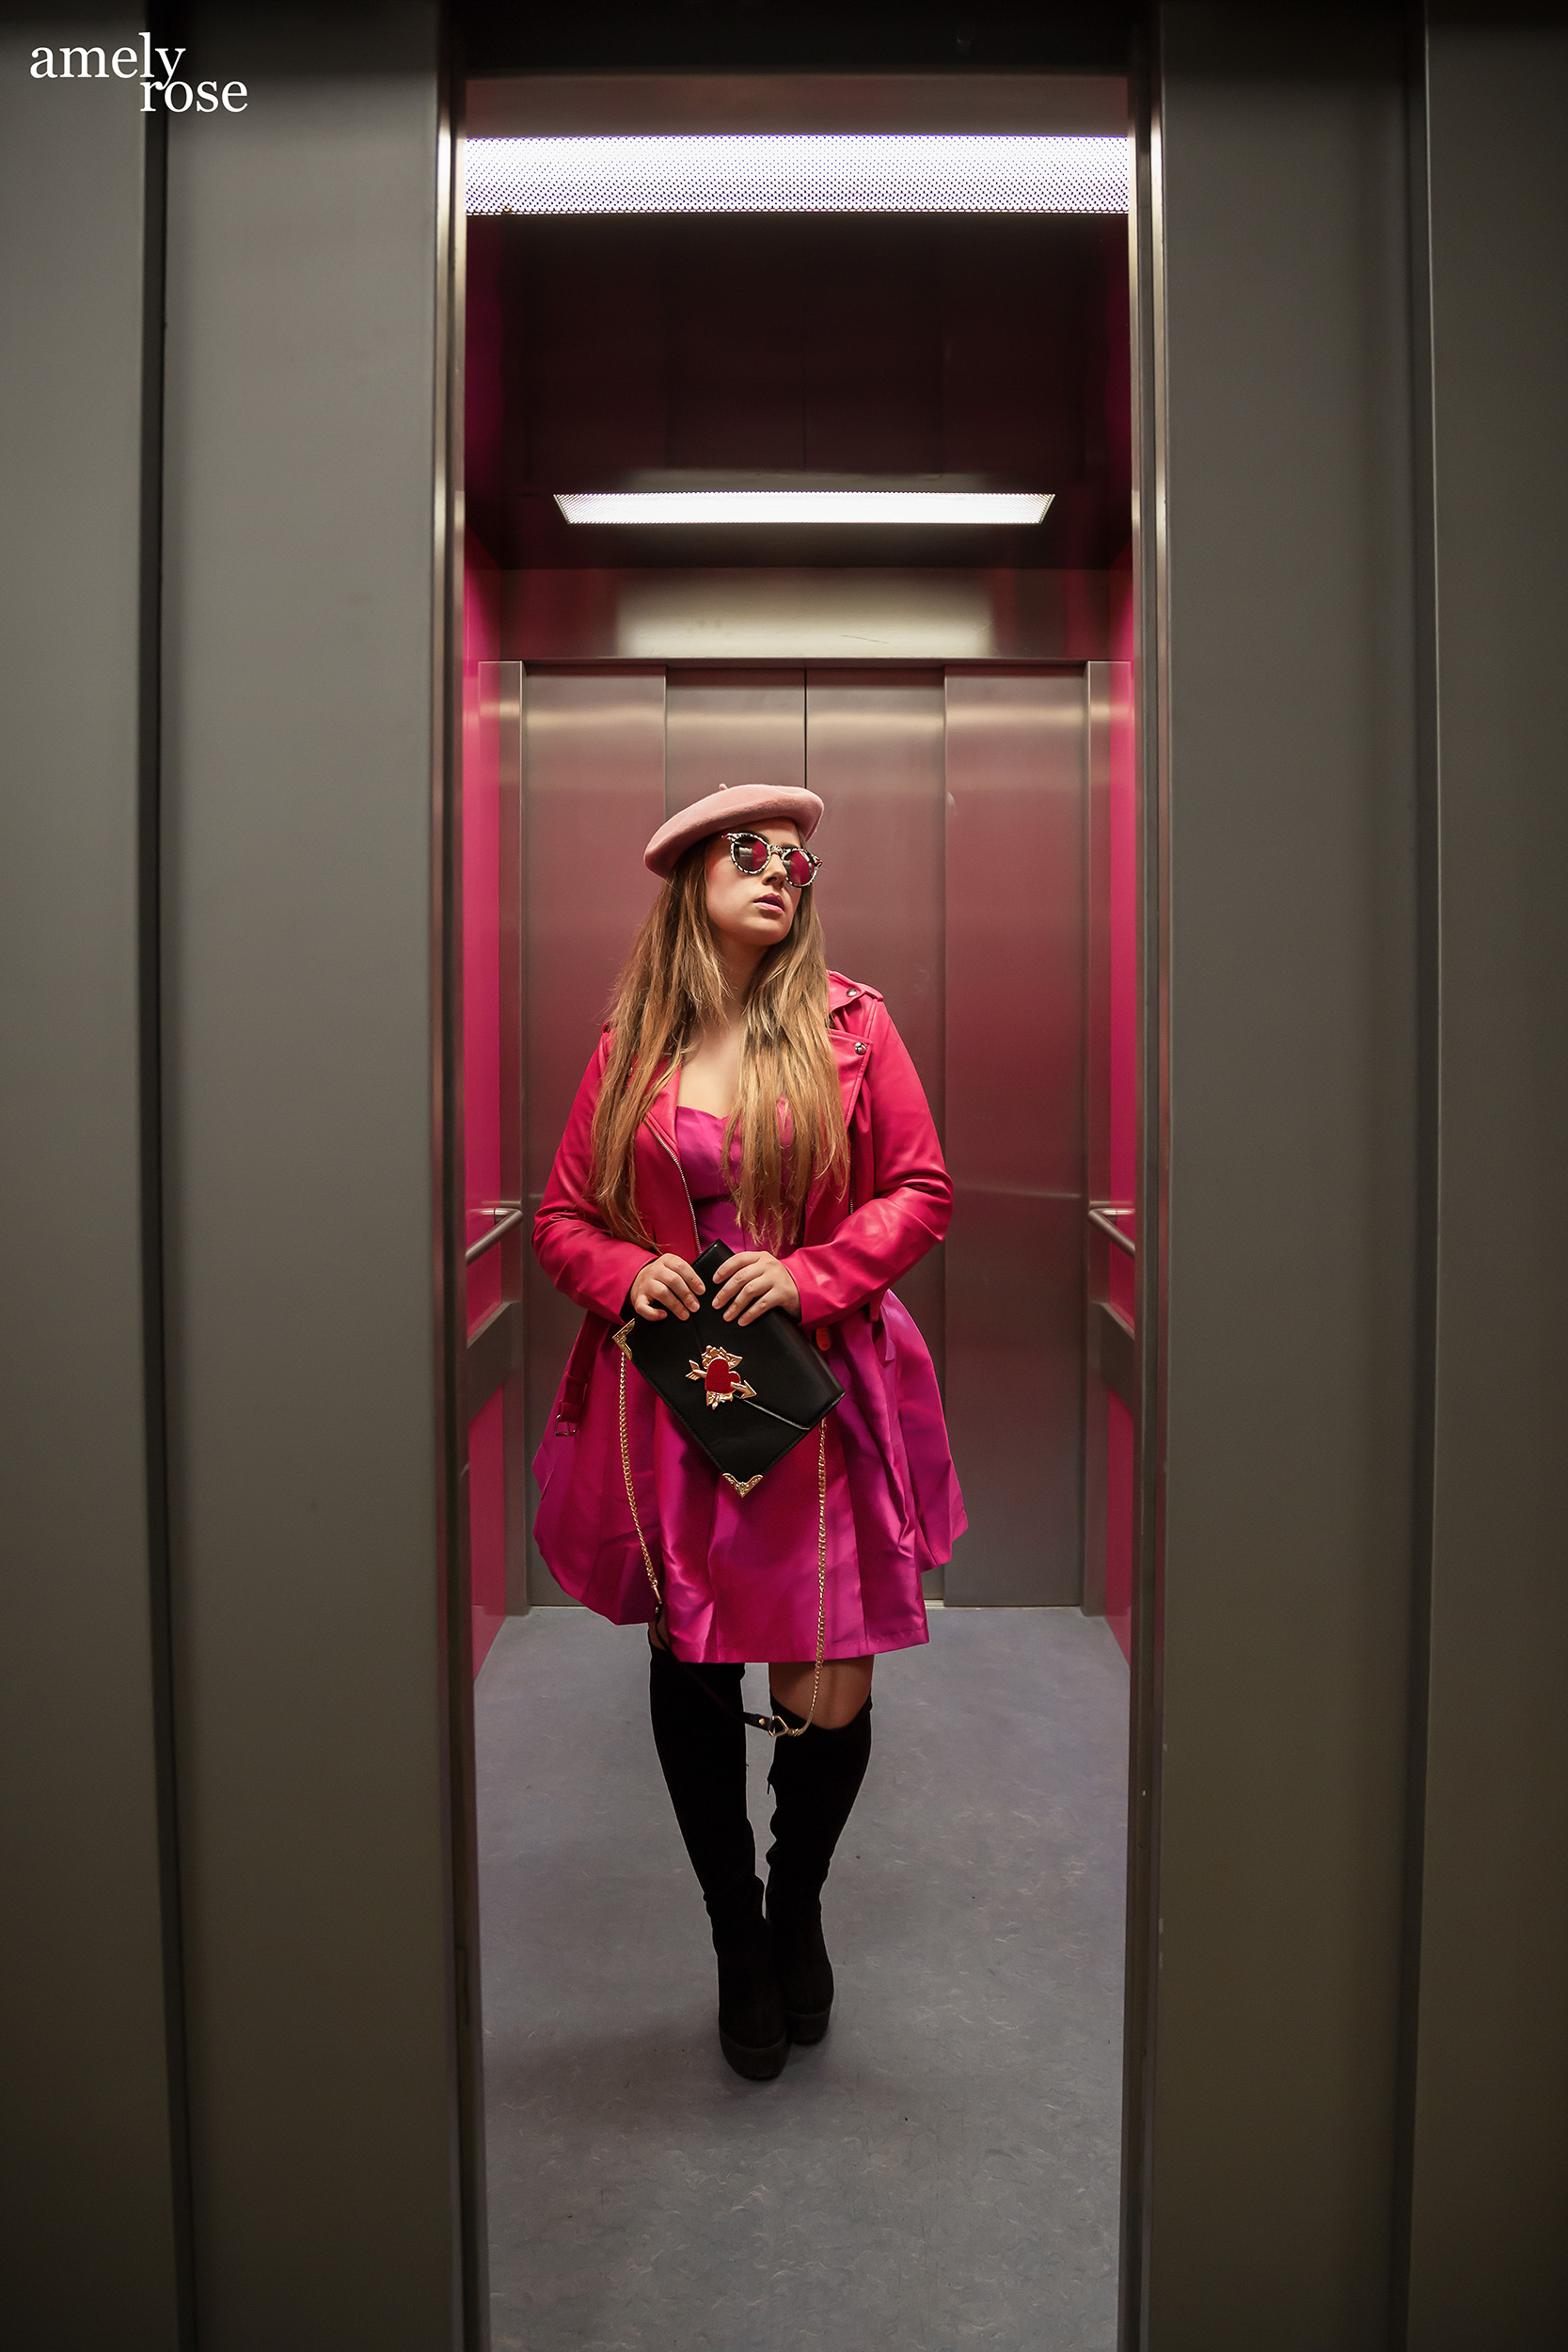 Amely Rose german influencer in a stylish pink #ootd in a lift. This fashioneditorial reminds of #fiftyshadesof rose.